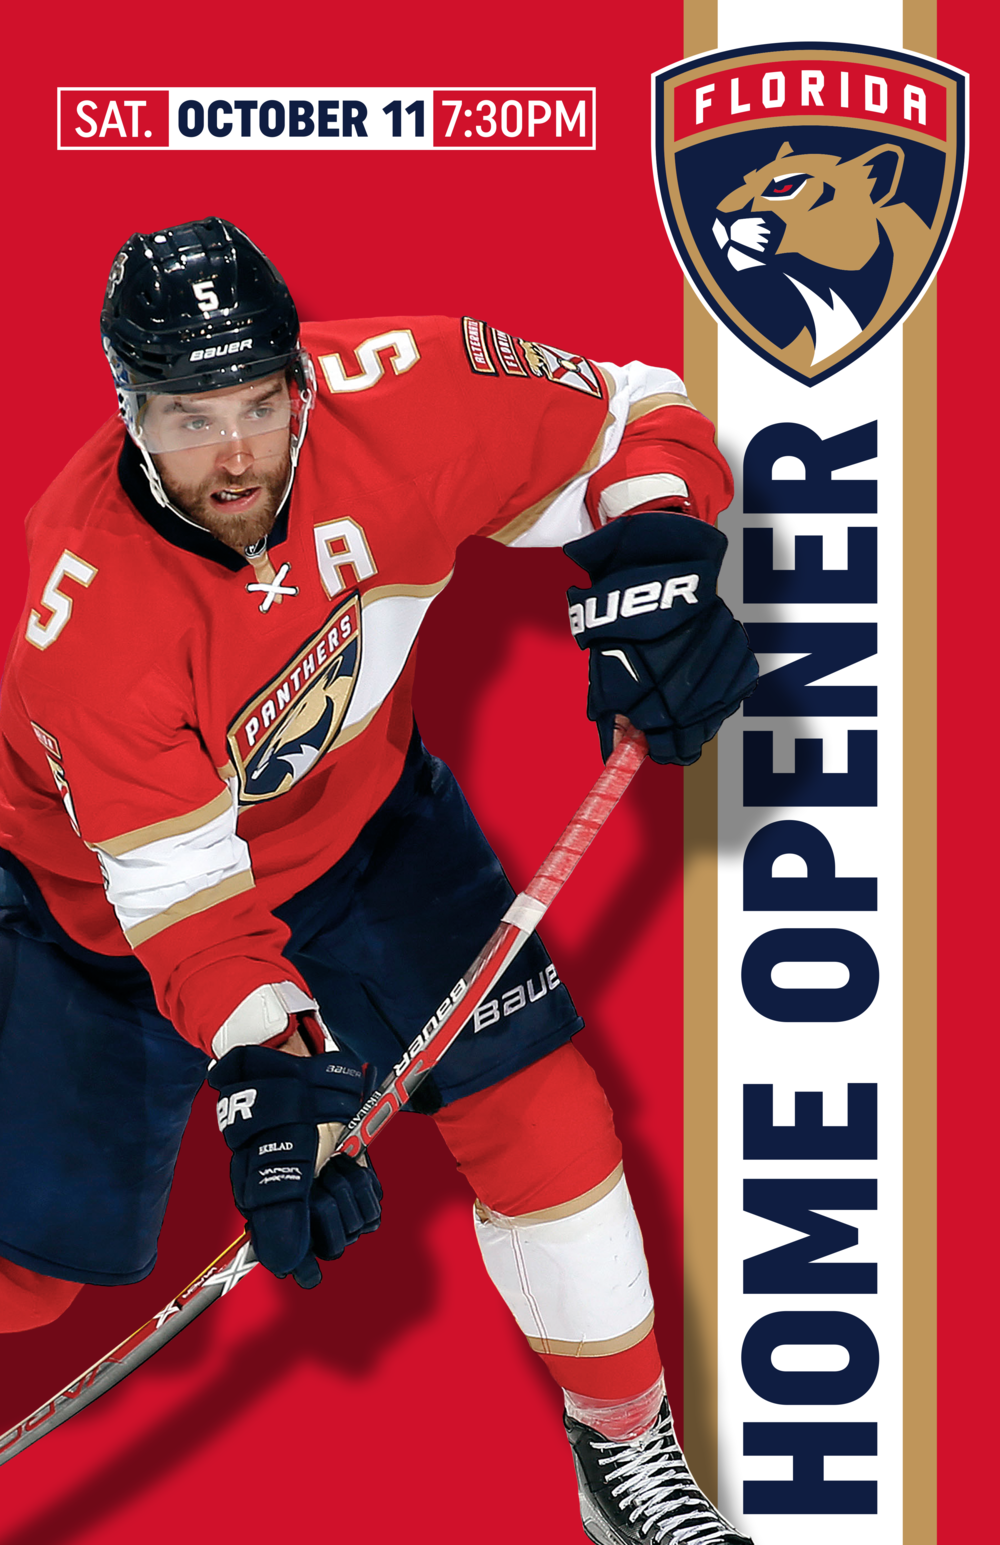 Florida Panthers Home Opener Graphic